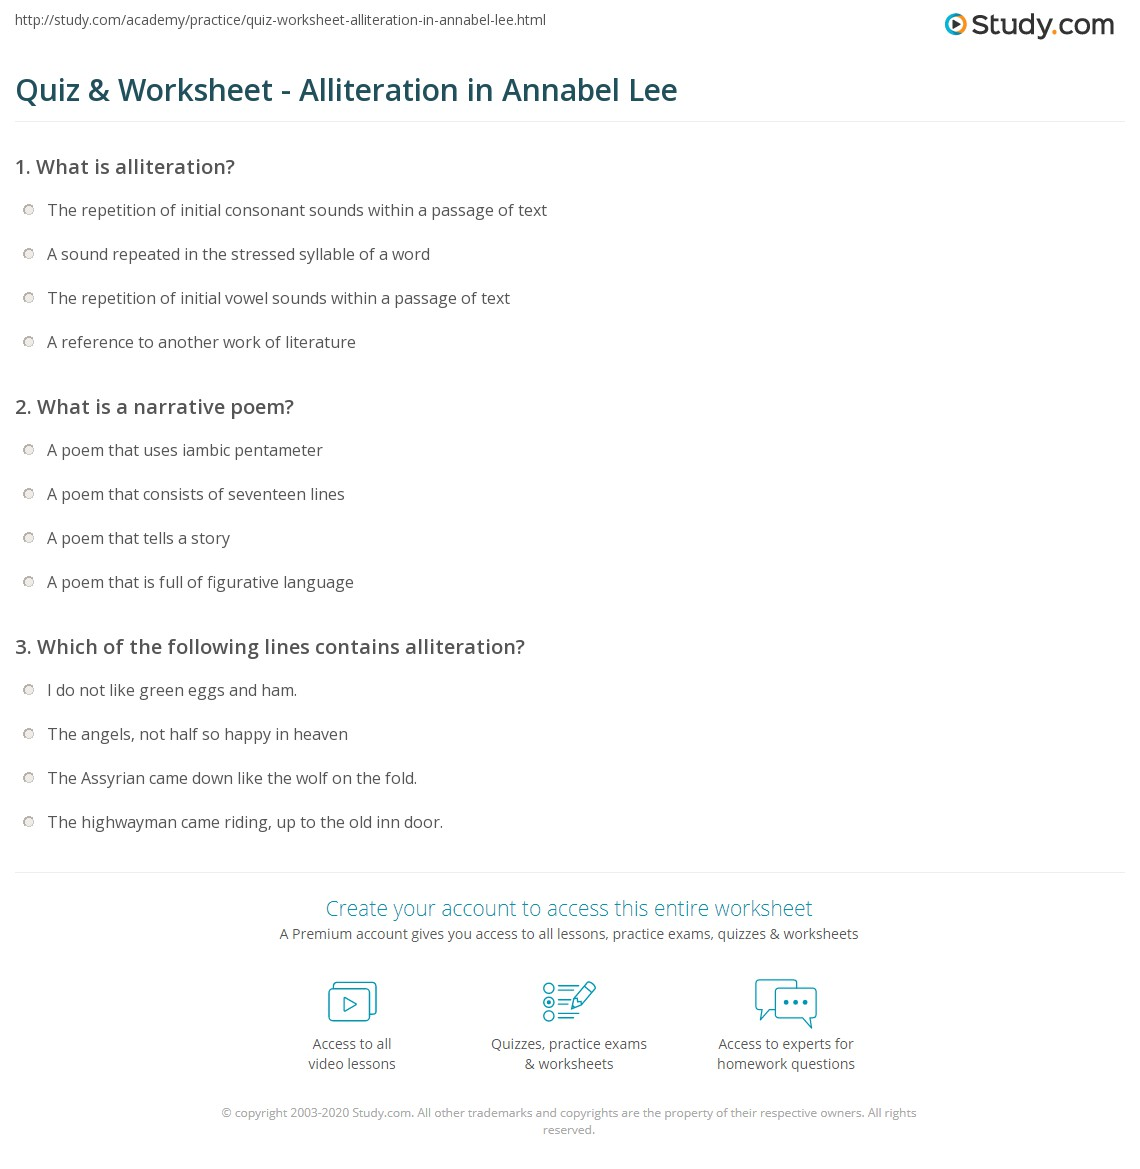 quiz worksheet alliteration in annabel lee com print alliteration in annabel lee worksheet